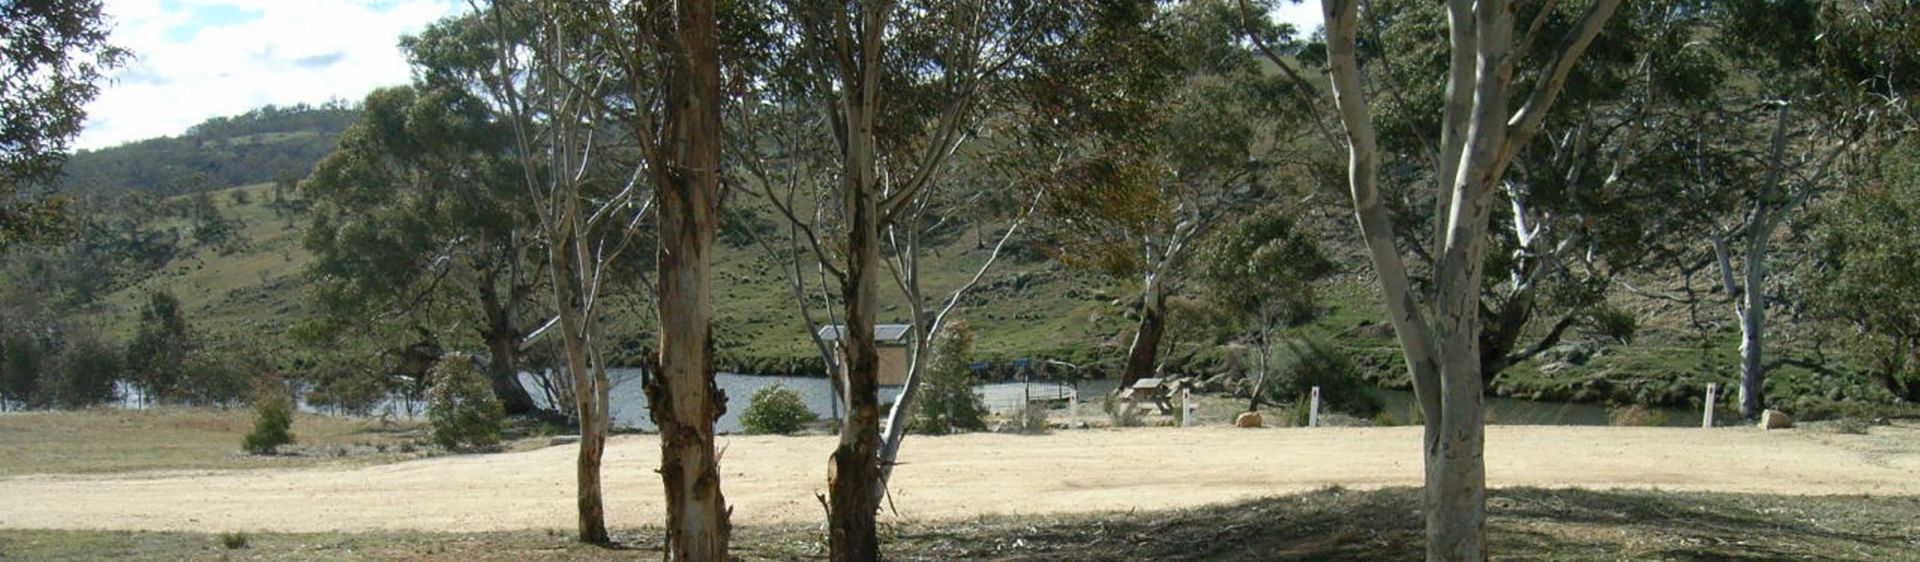 Platypus Reserve - Bombala - Snowy Mountains